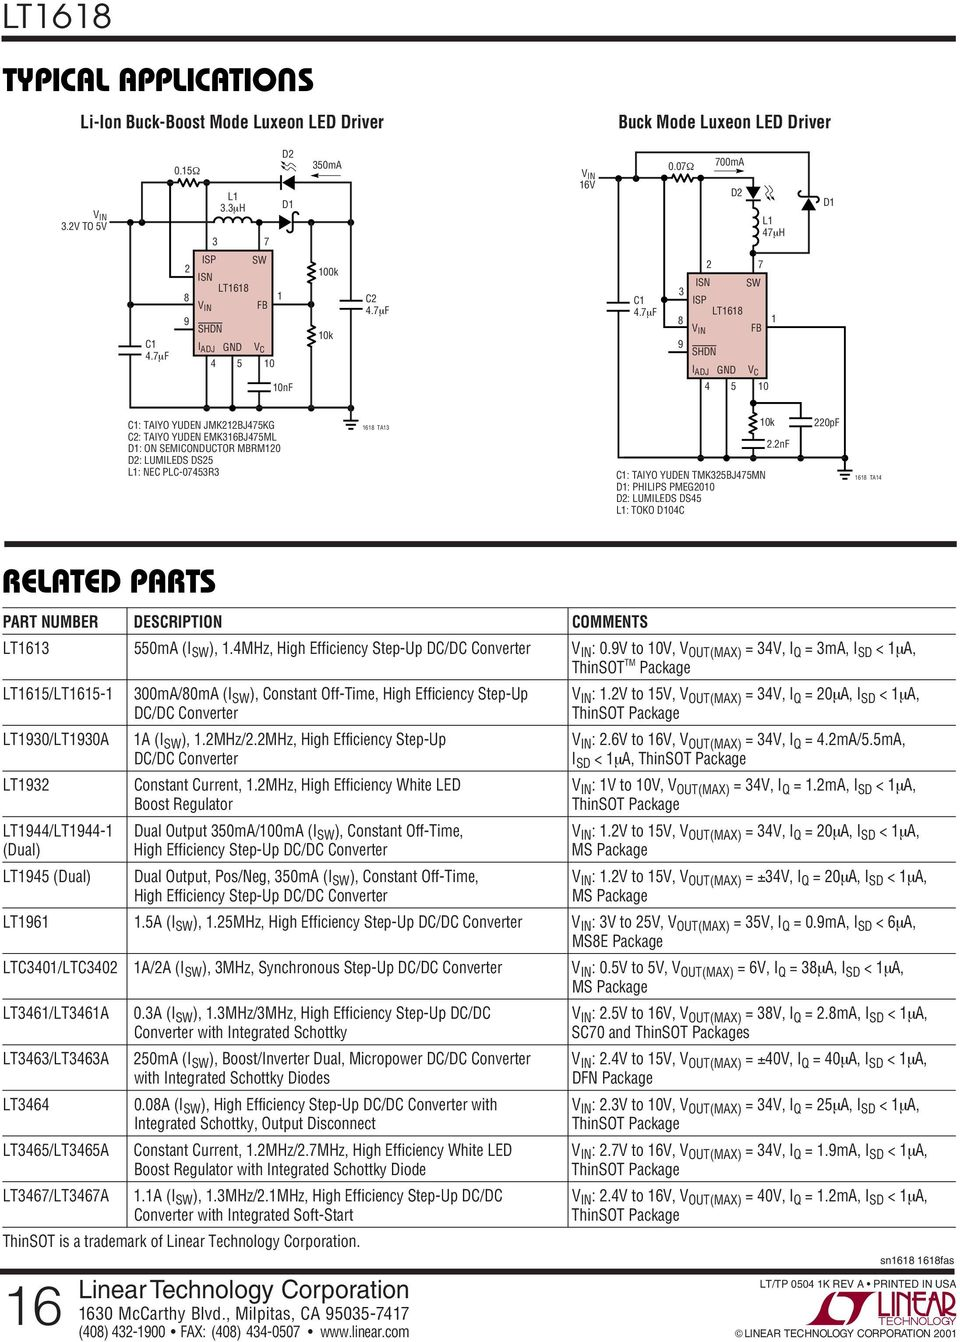 PLC-75R 68 TA C: TAIYO YDEN TMK5BJ75MN D: PHILIPS PMEG D: LMILEDS DS5 L: TOKO DC k.nf pf 68 TA RELATED PARTS PART NMBER DESCRIPTION COMMENTS LT6 55mA (I SW ),.